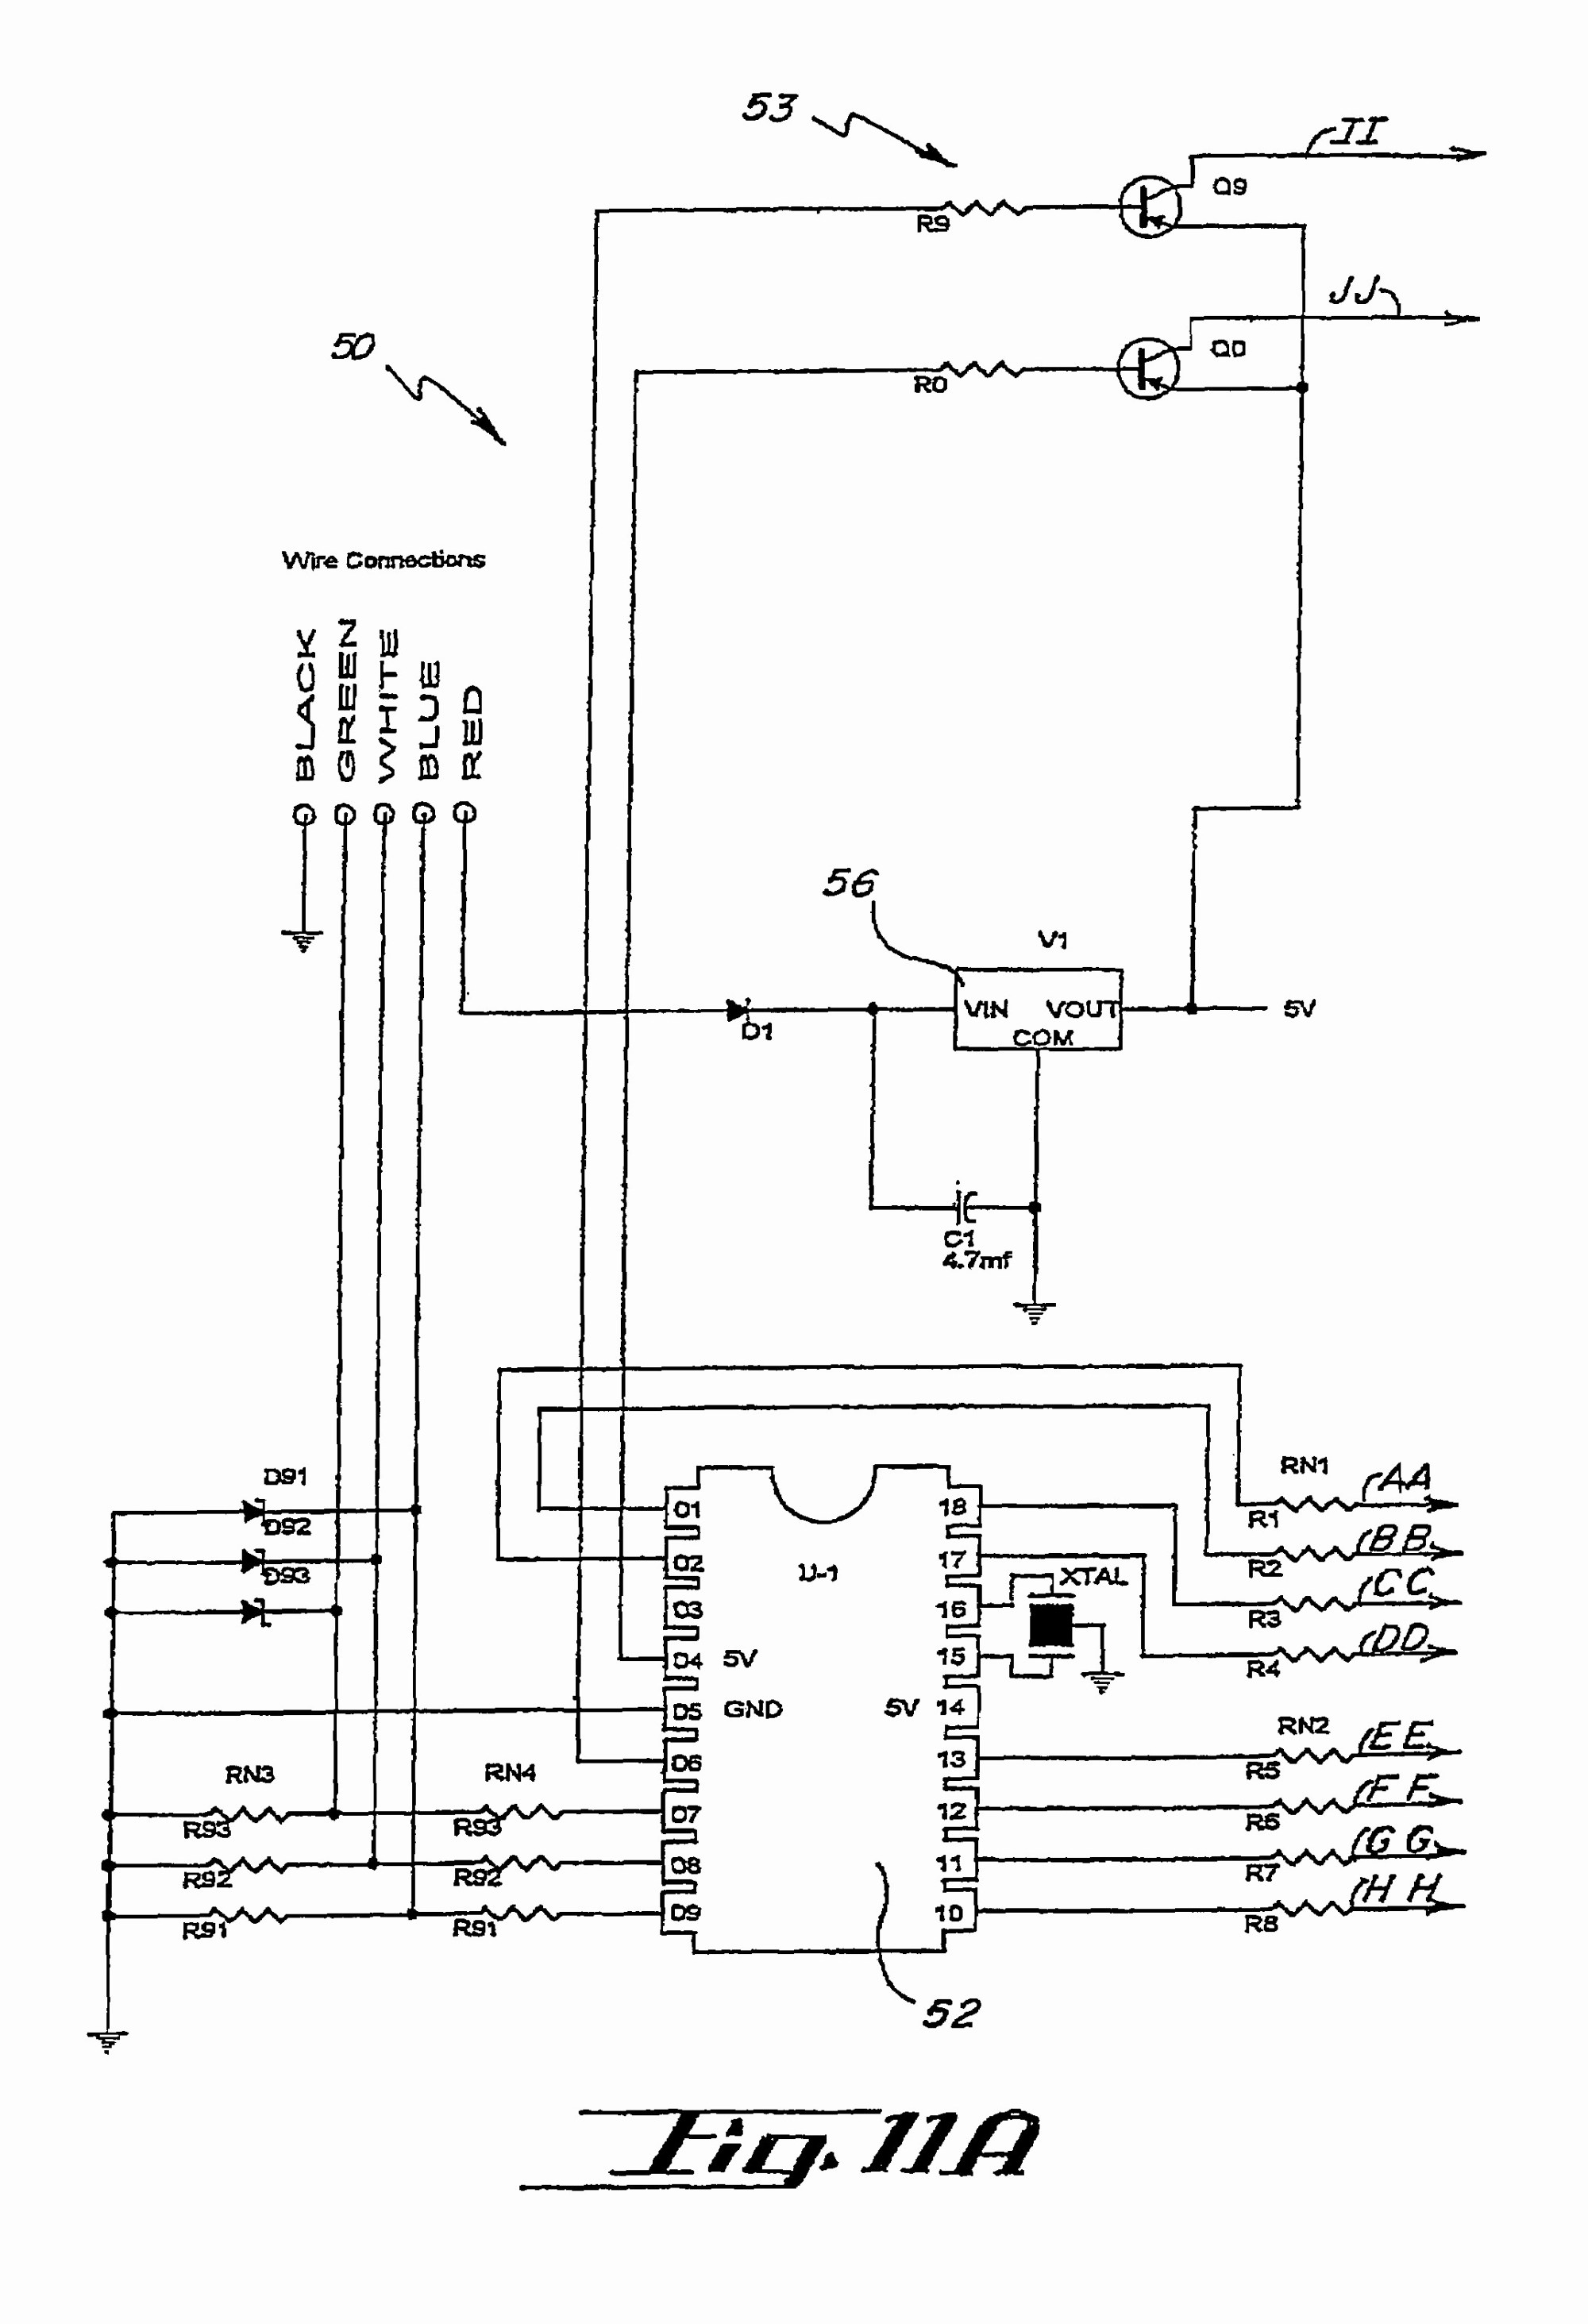 hight resolution of tir3 wiring diagram schema wiring diagramwhelen tir3 led wiring diagram wiring diagram name tir3 wiring diagram